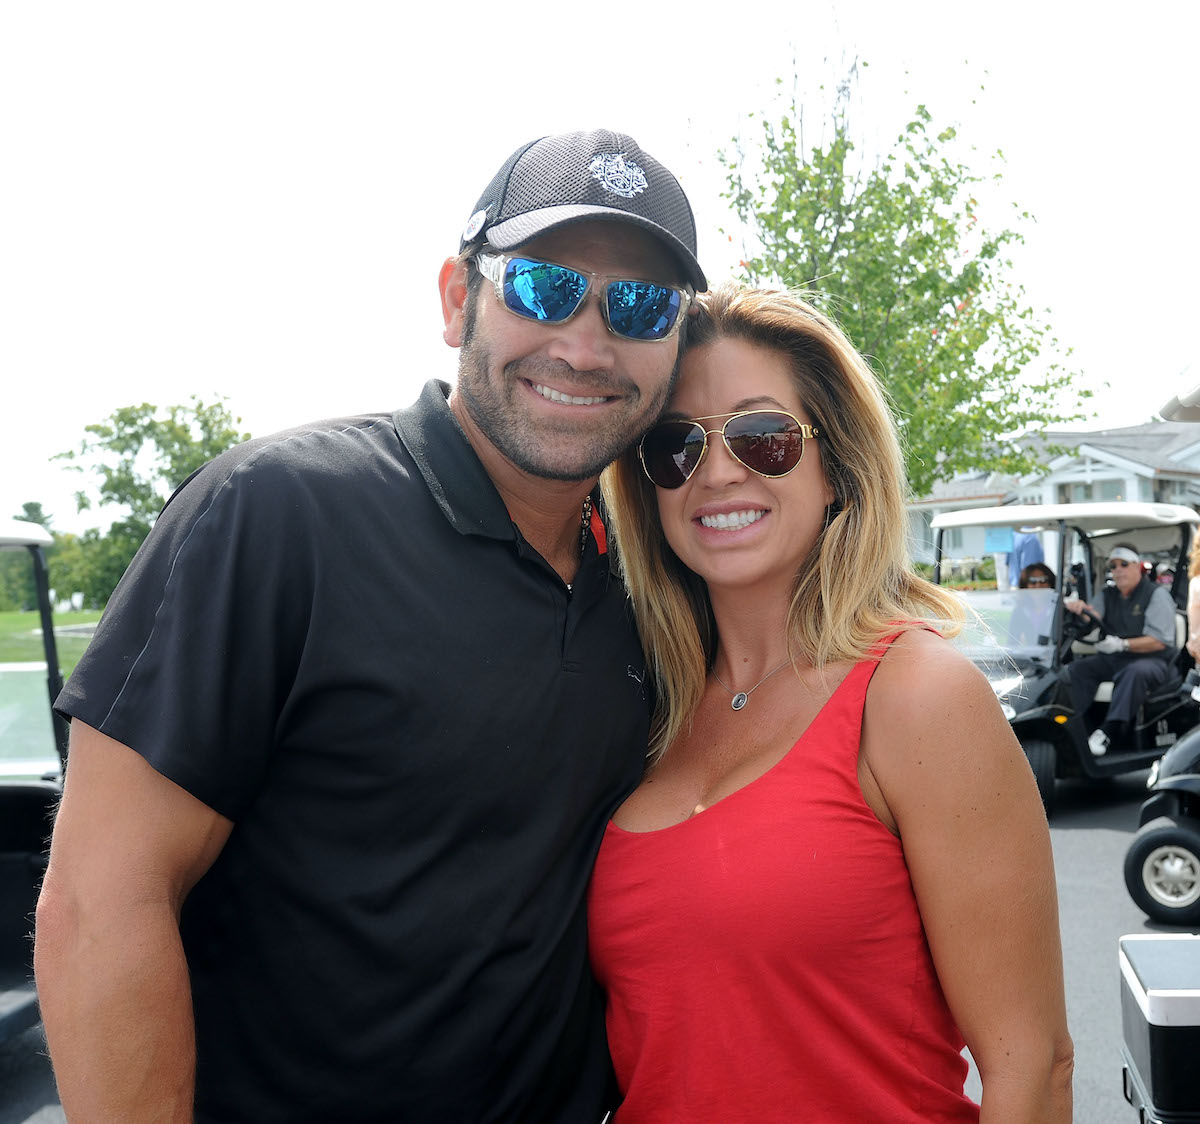 Johnny Damon and Michelle Damon attend an event